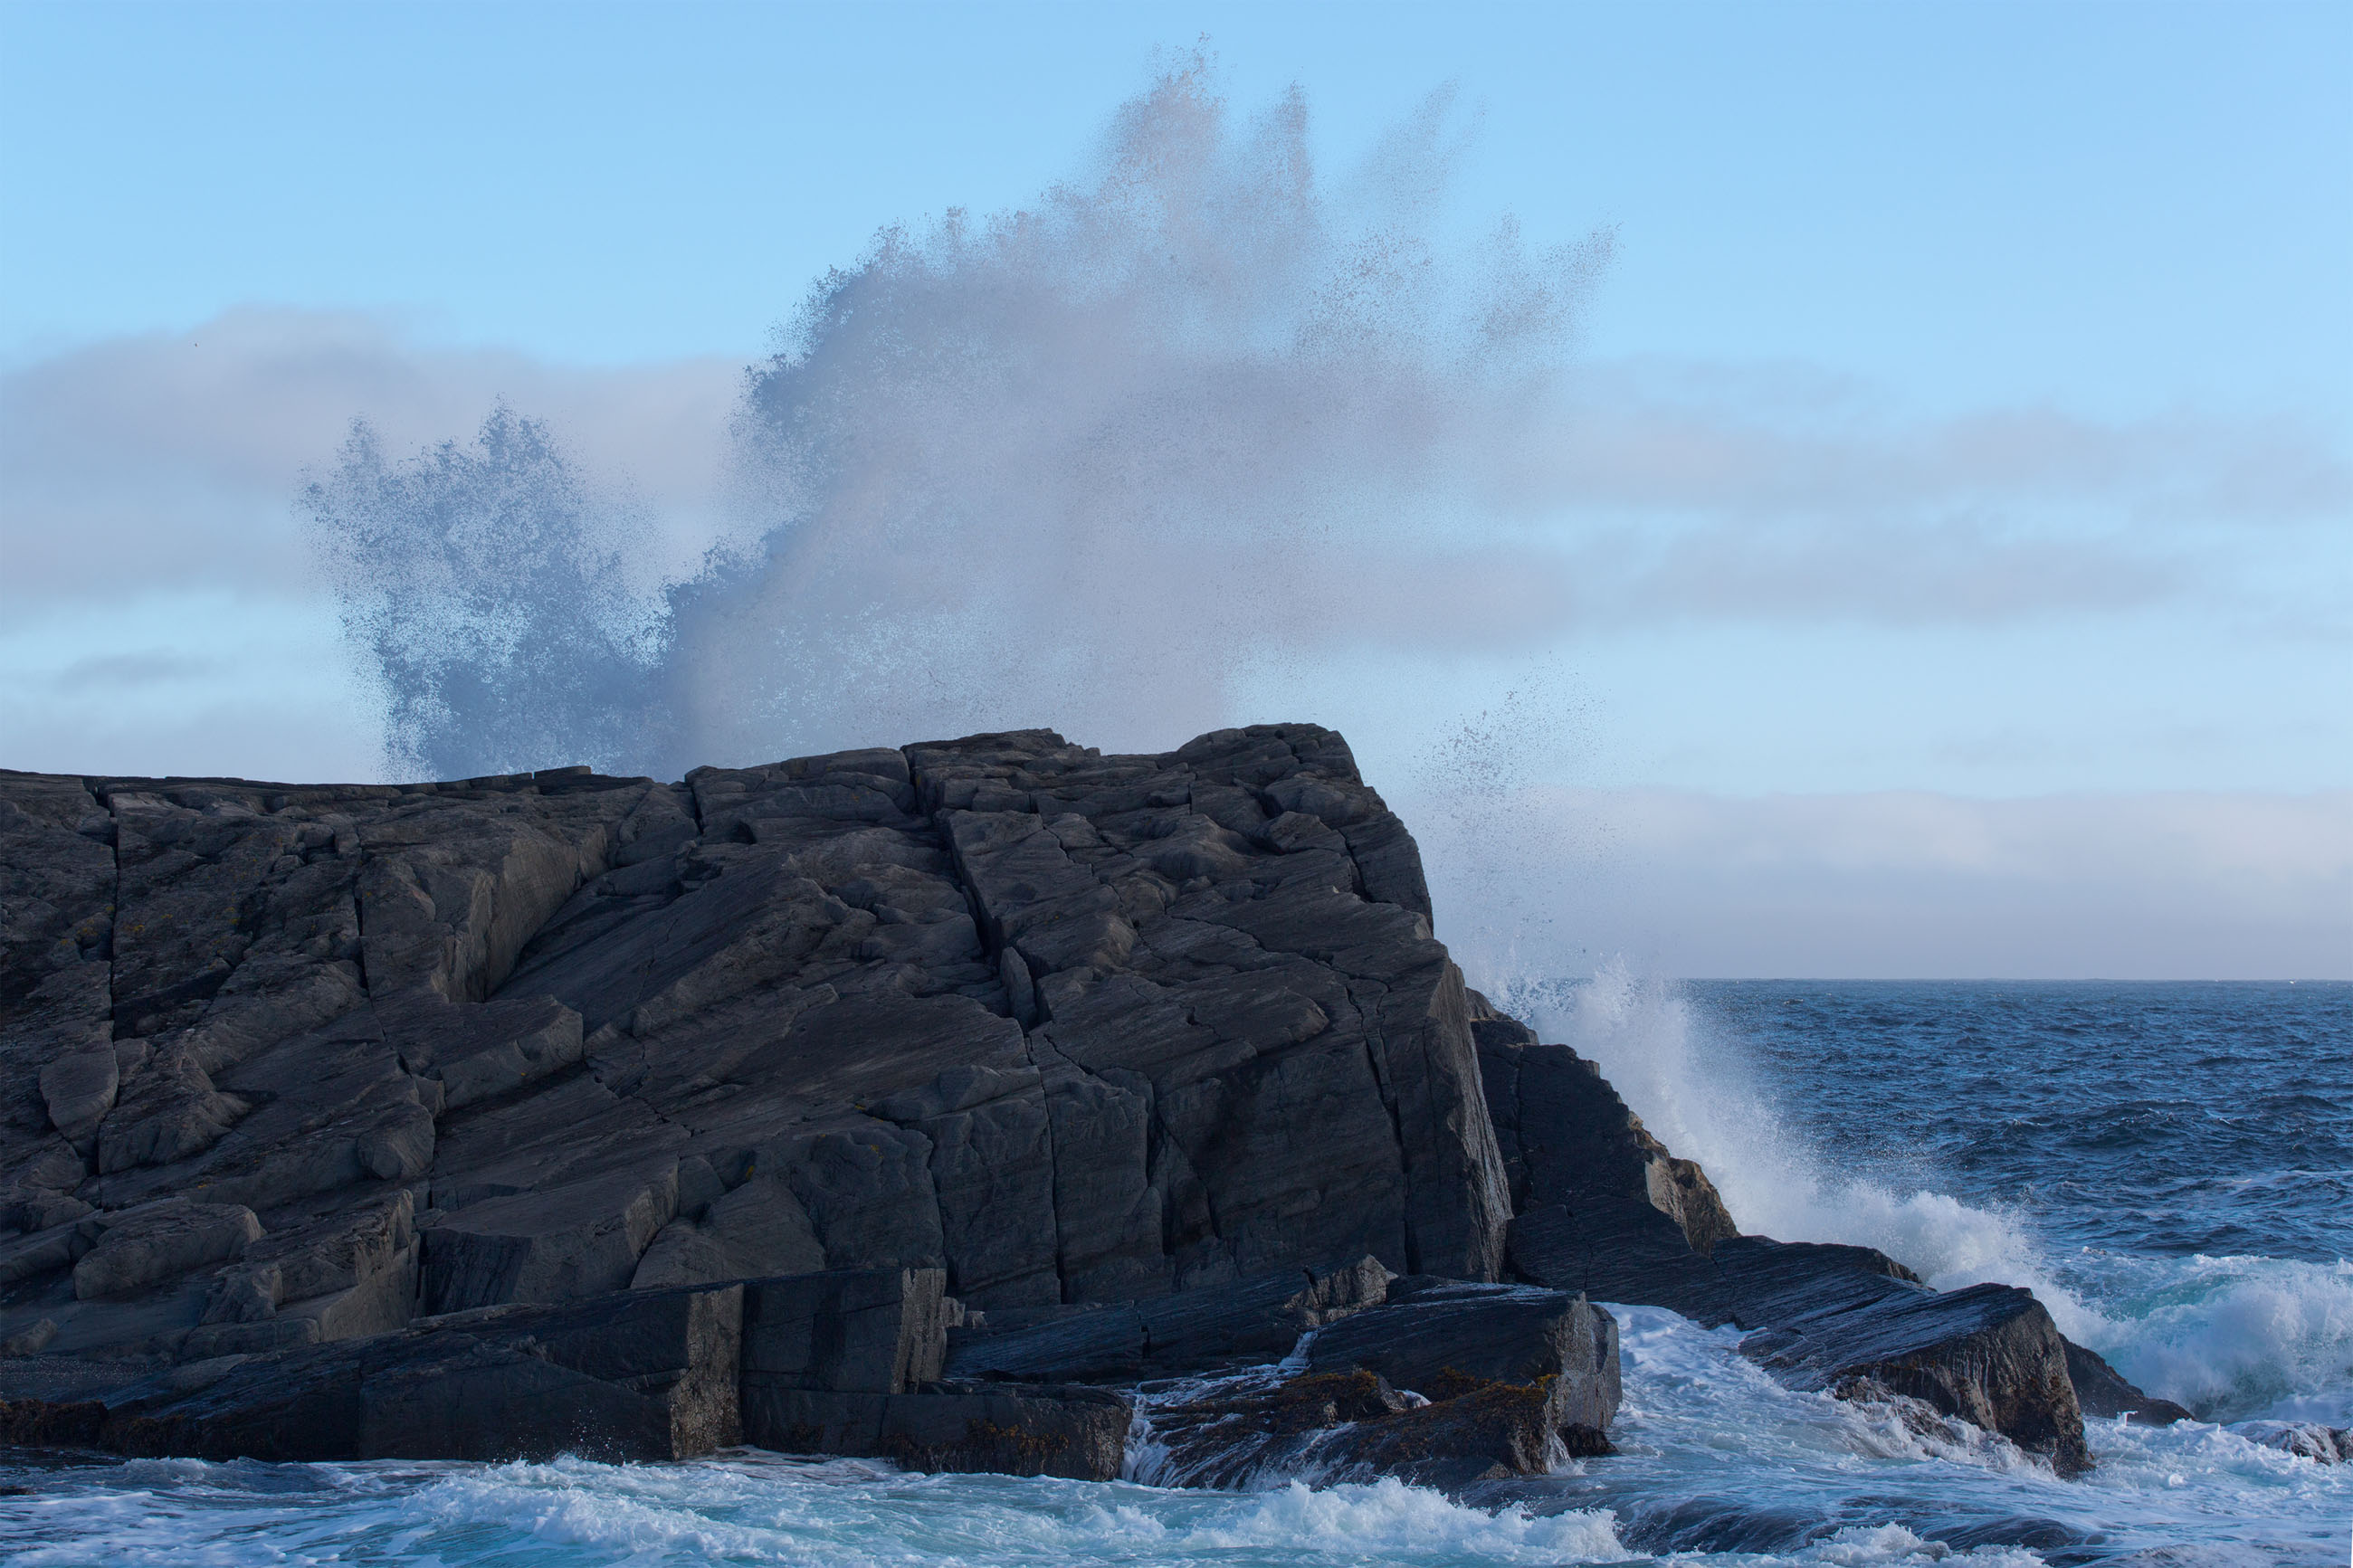 Large waves crashing on shoreline photo